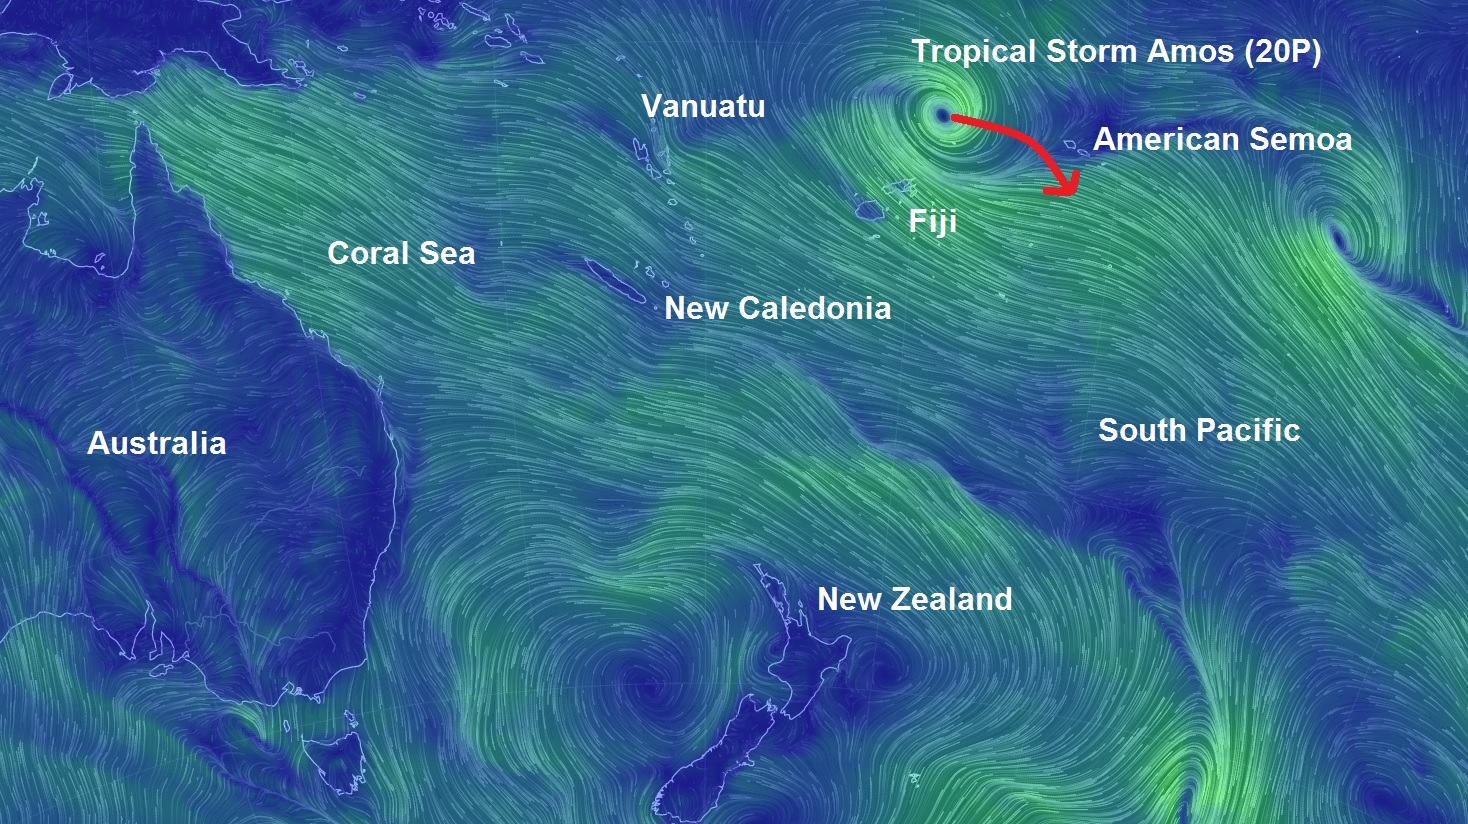 Tropical cyclone 20P, Amos the fourth tropical cyclone to hit Fiji area in just over a month